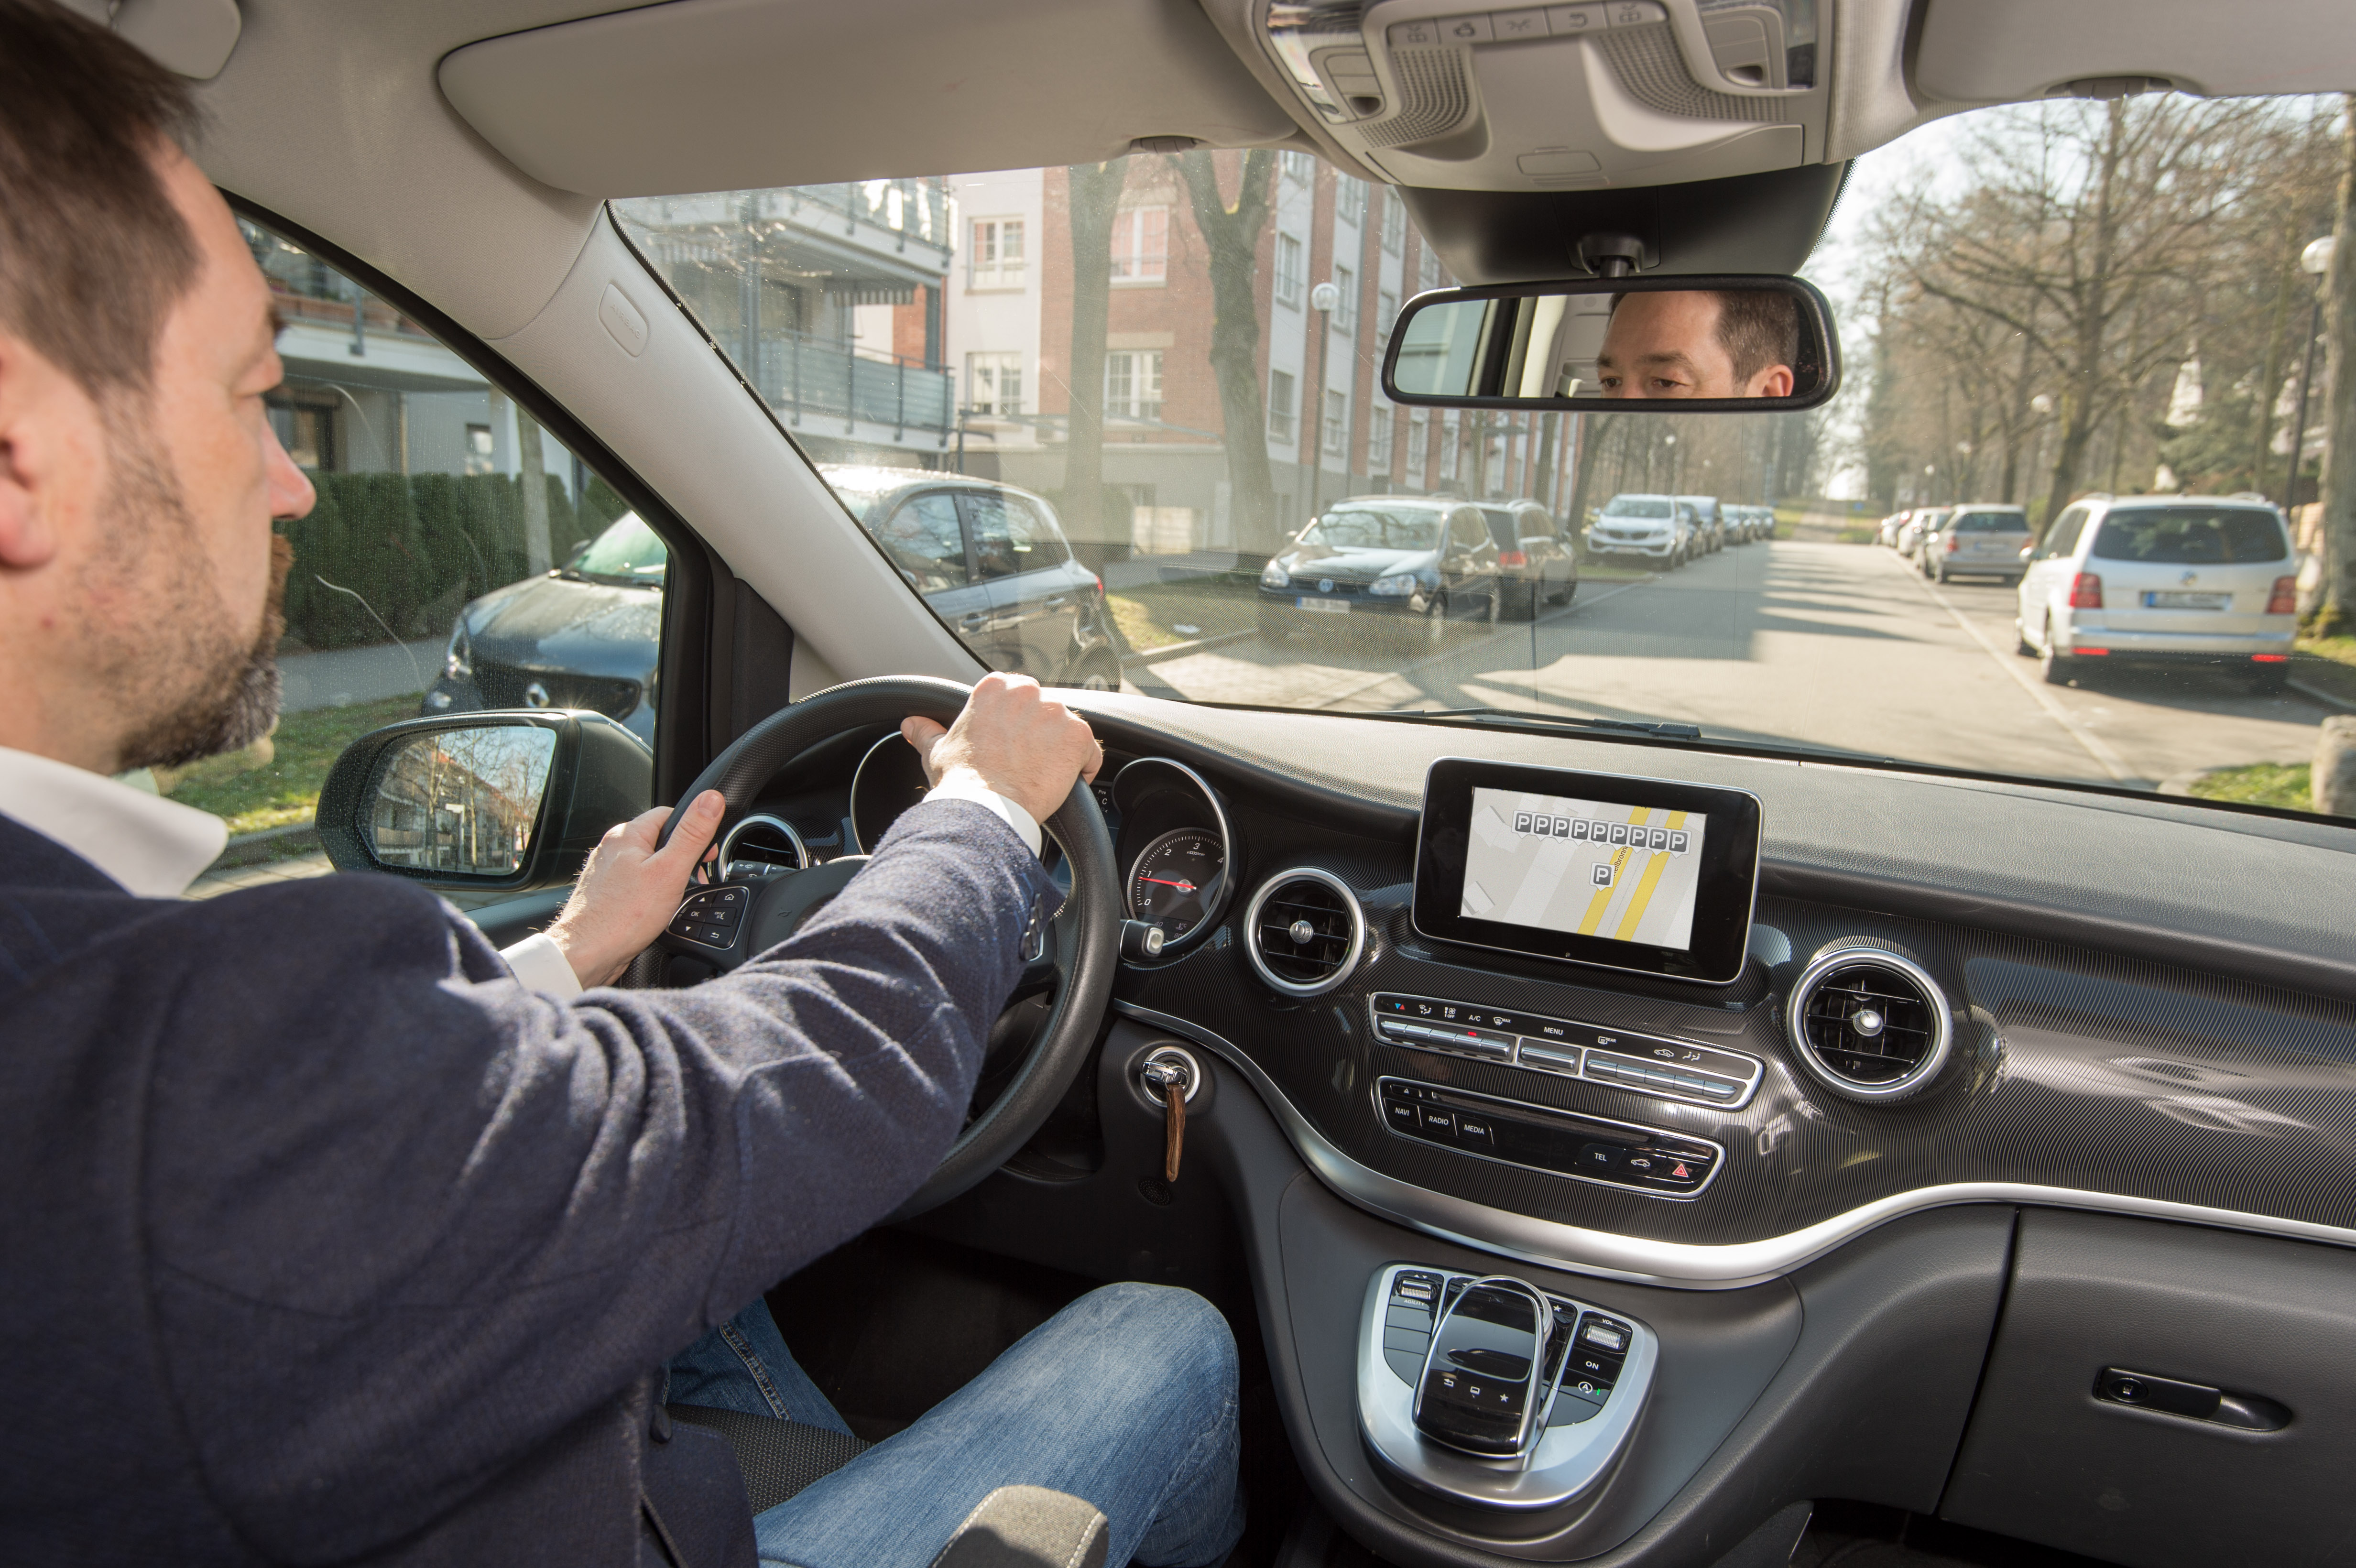 Saving valuable time with the Bosch connected parking function